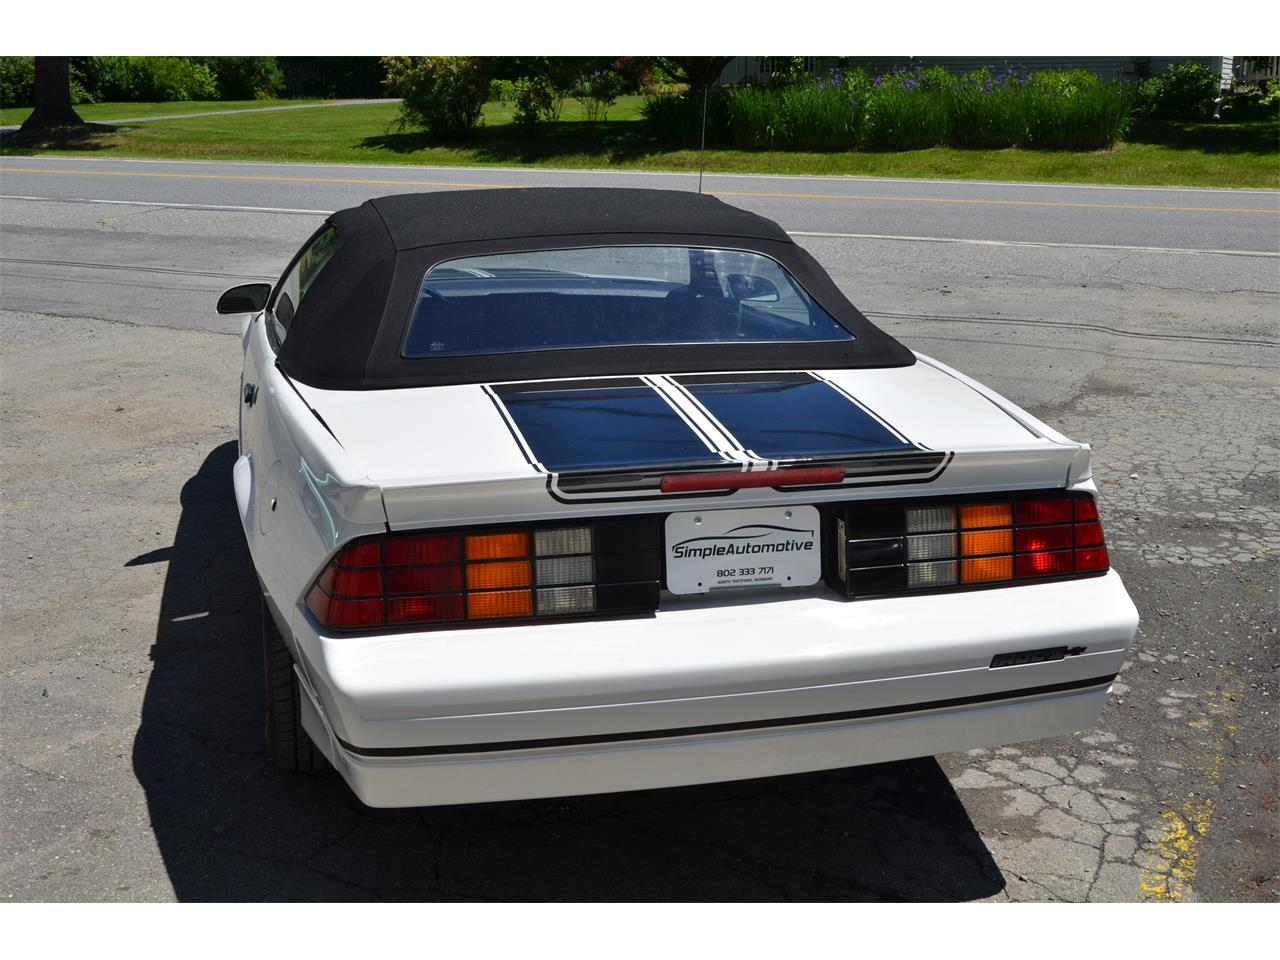 Large Picture of 1989 Camaro IROC-Z - $14,000.00 - LBGQ